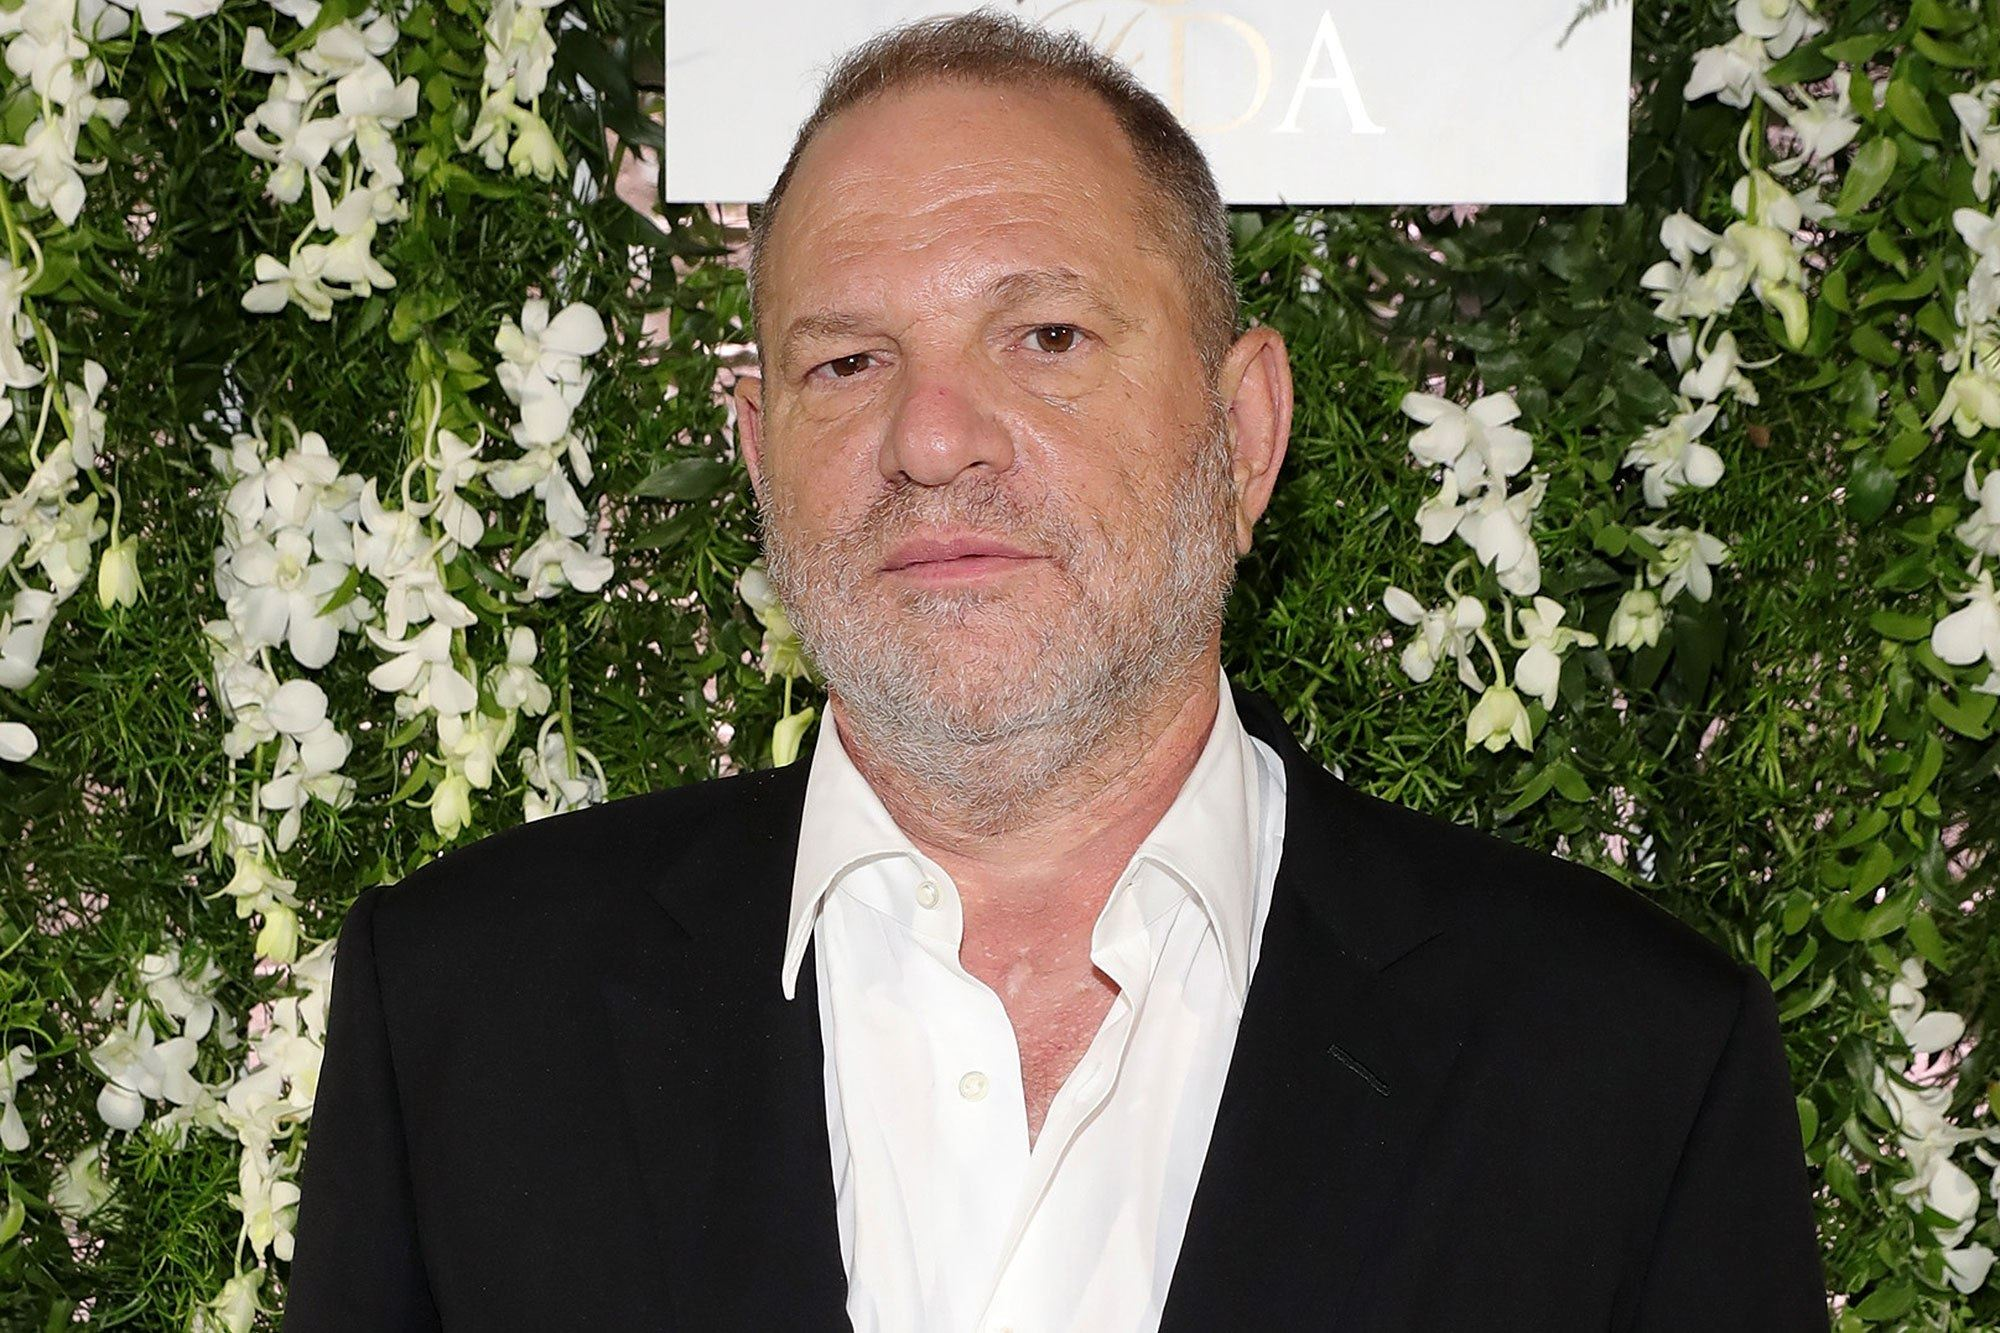 Harvey Weinstein enfrenta nueva demanda por ataque sexual